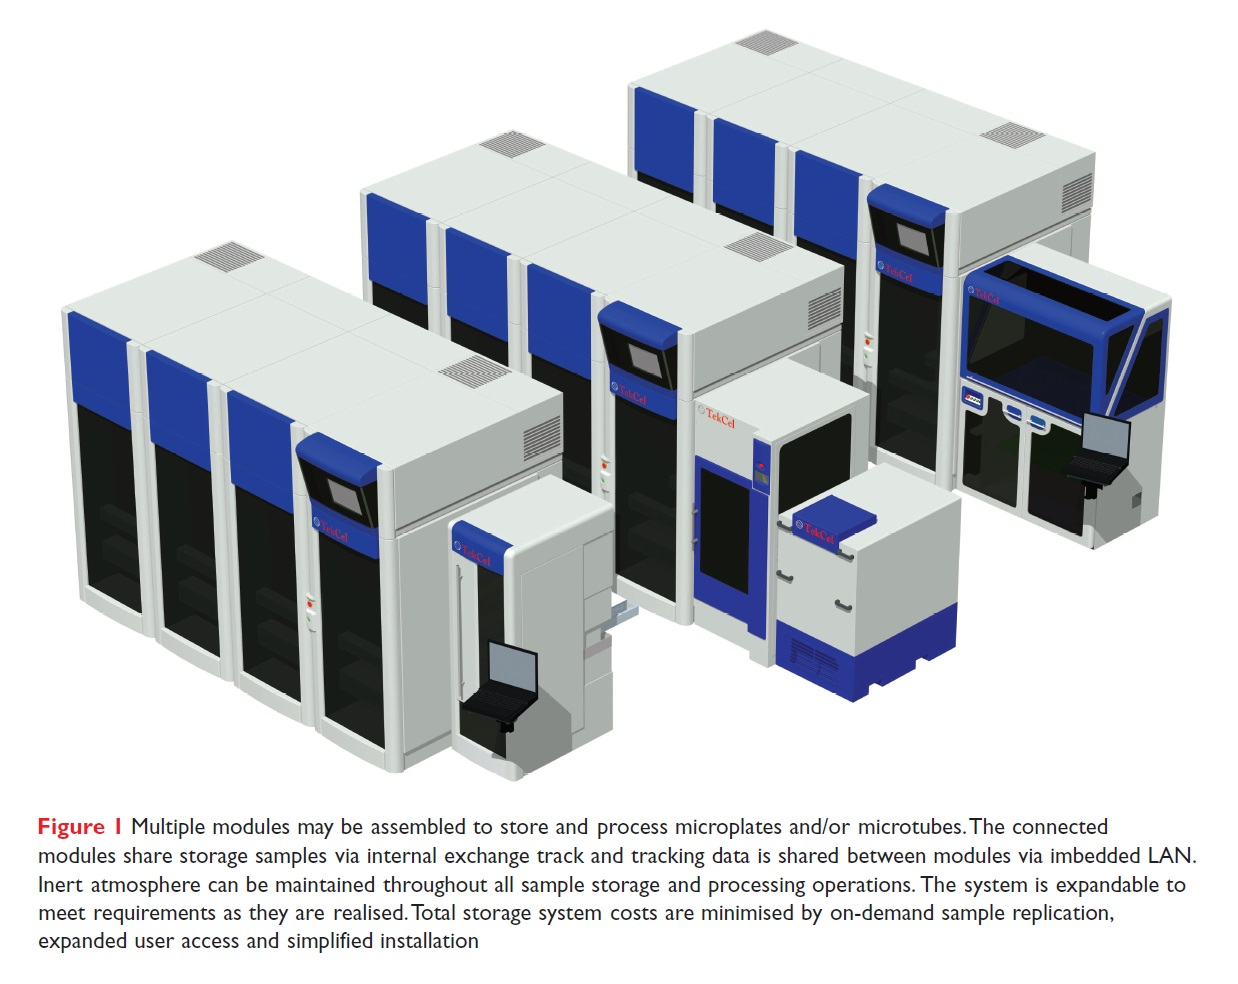 Figure 1 Multiple modules may be assembled to store and process microplates and/or microtubes